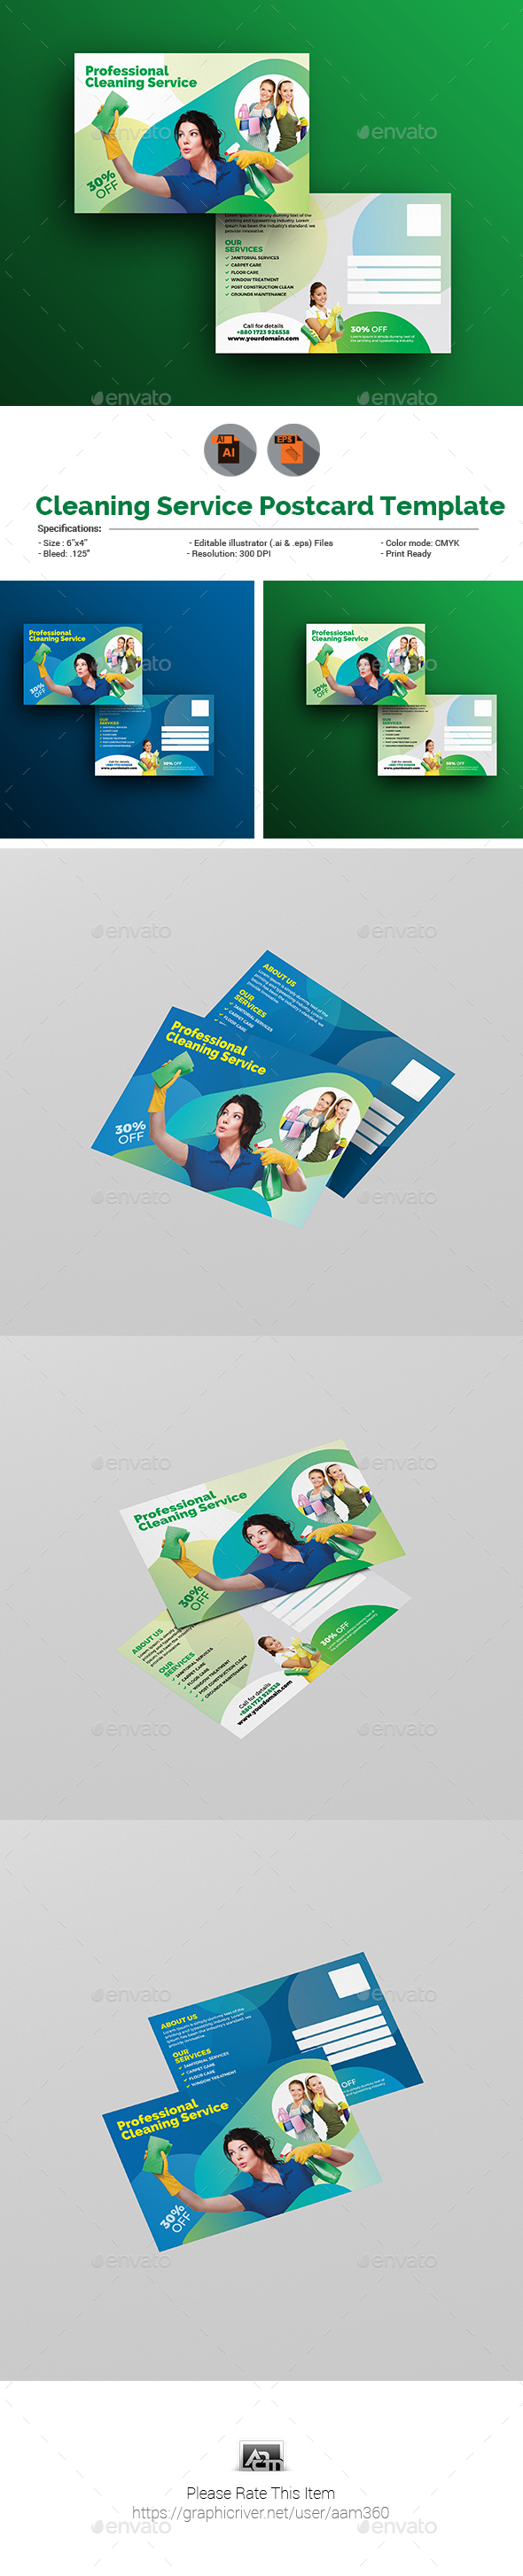 Cleaning Service Postcard Template - Cards & Invites Print Templates